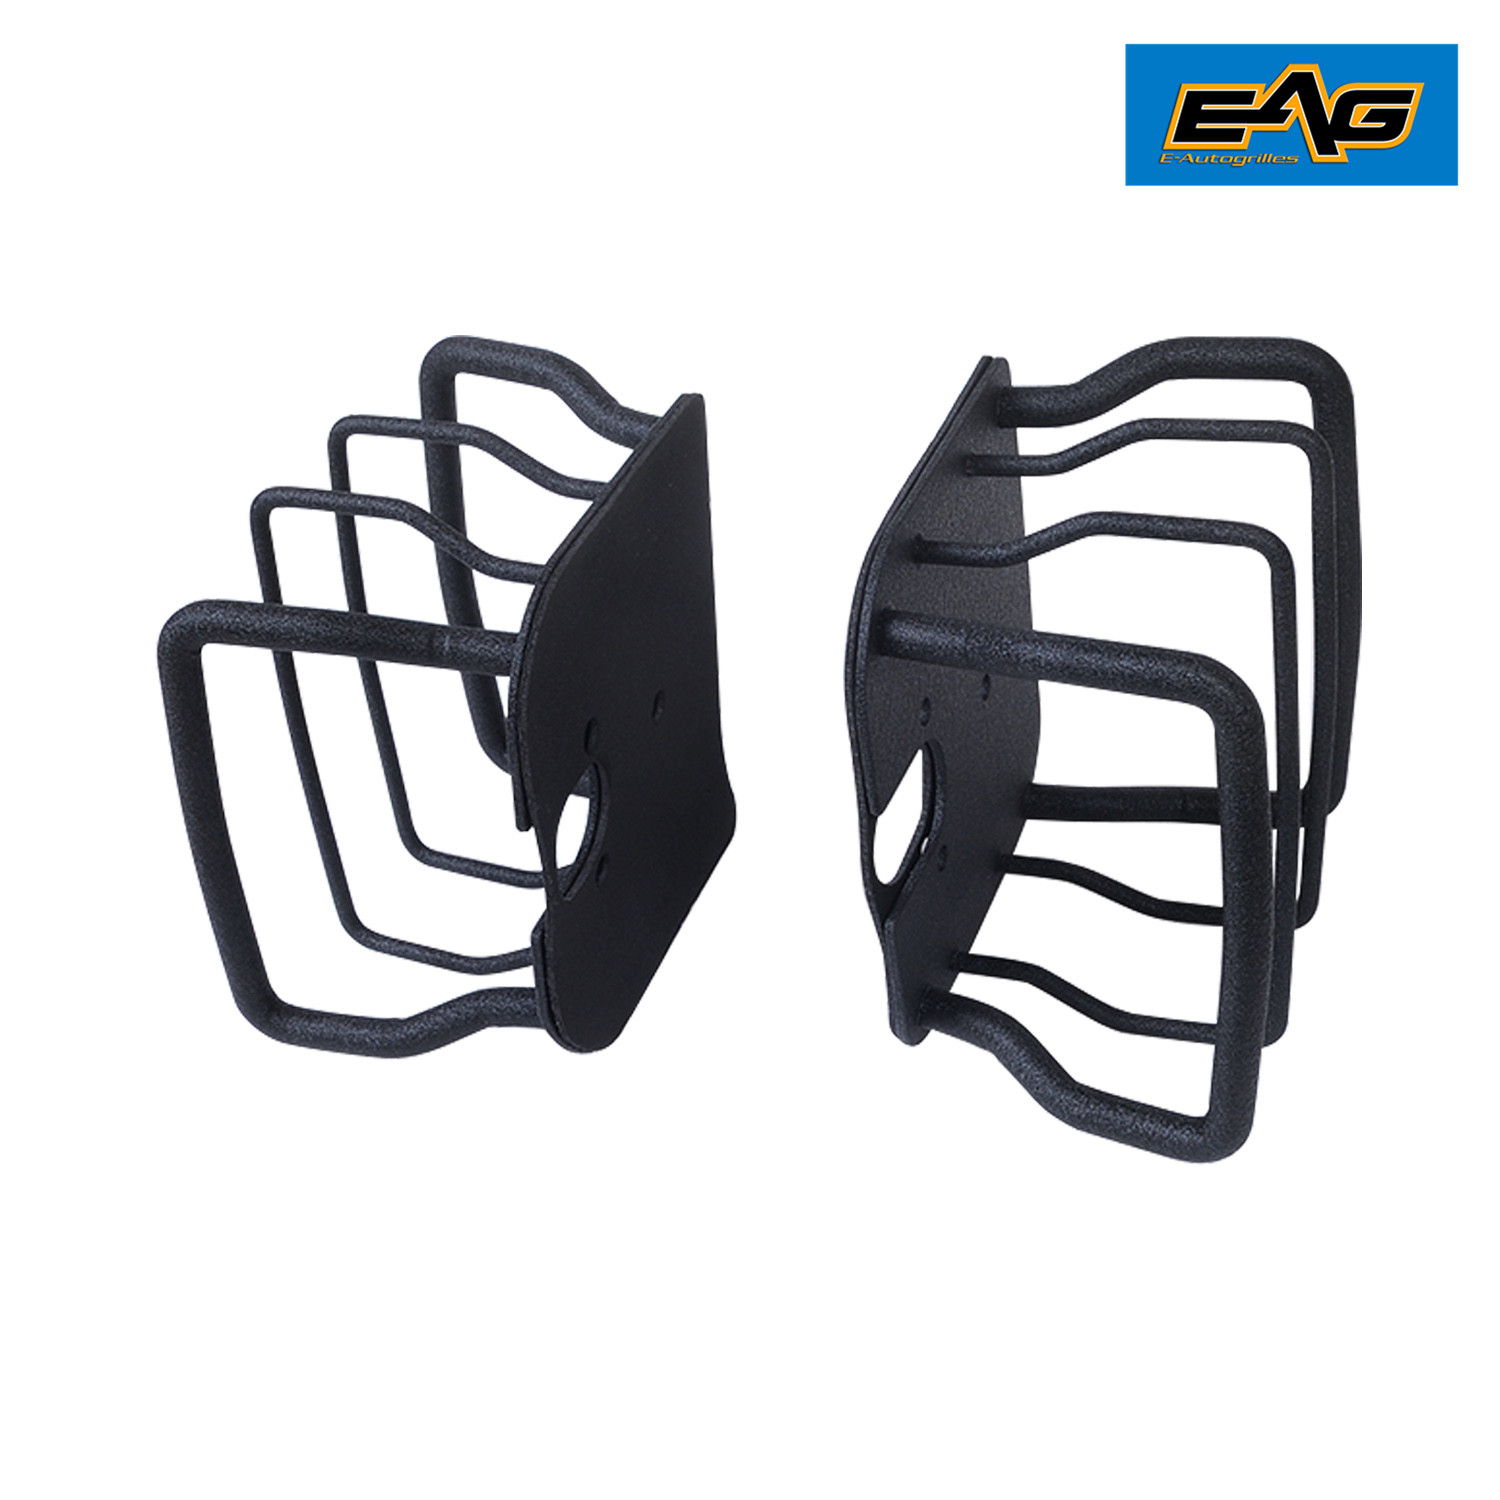 EAG 87-06 Jeep Wrangler TJ//YJ Black Textured Off Road Taillight Tail Light Guards Steel Protector